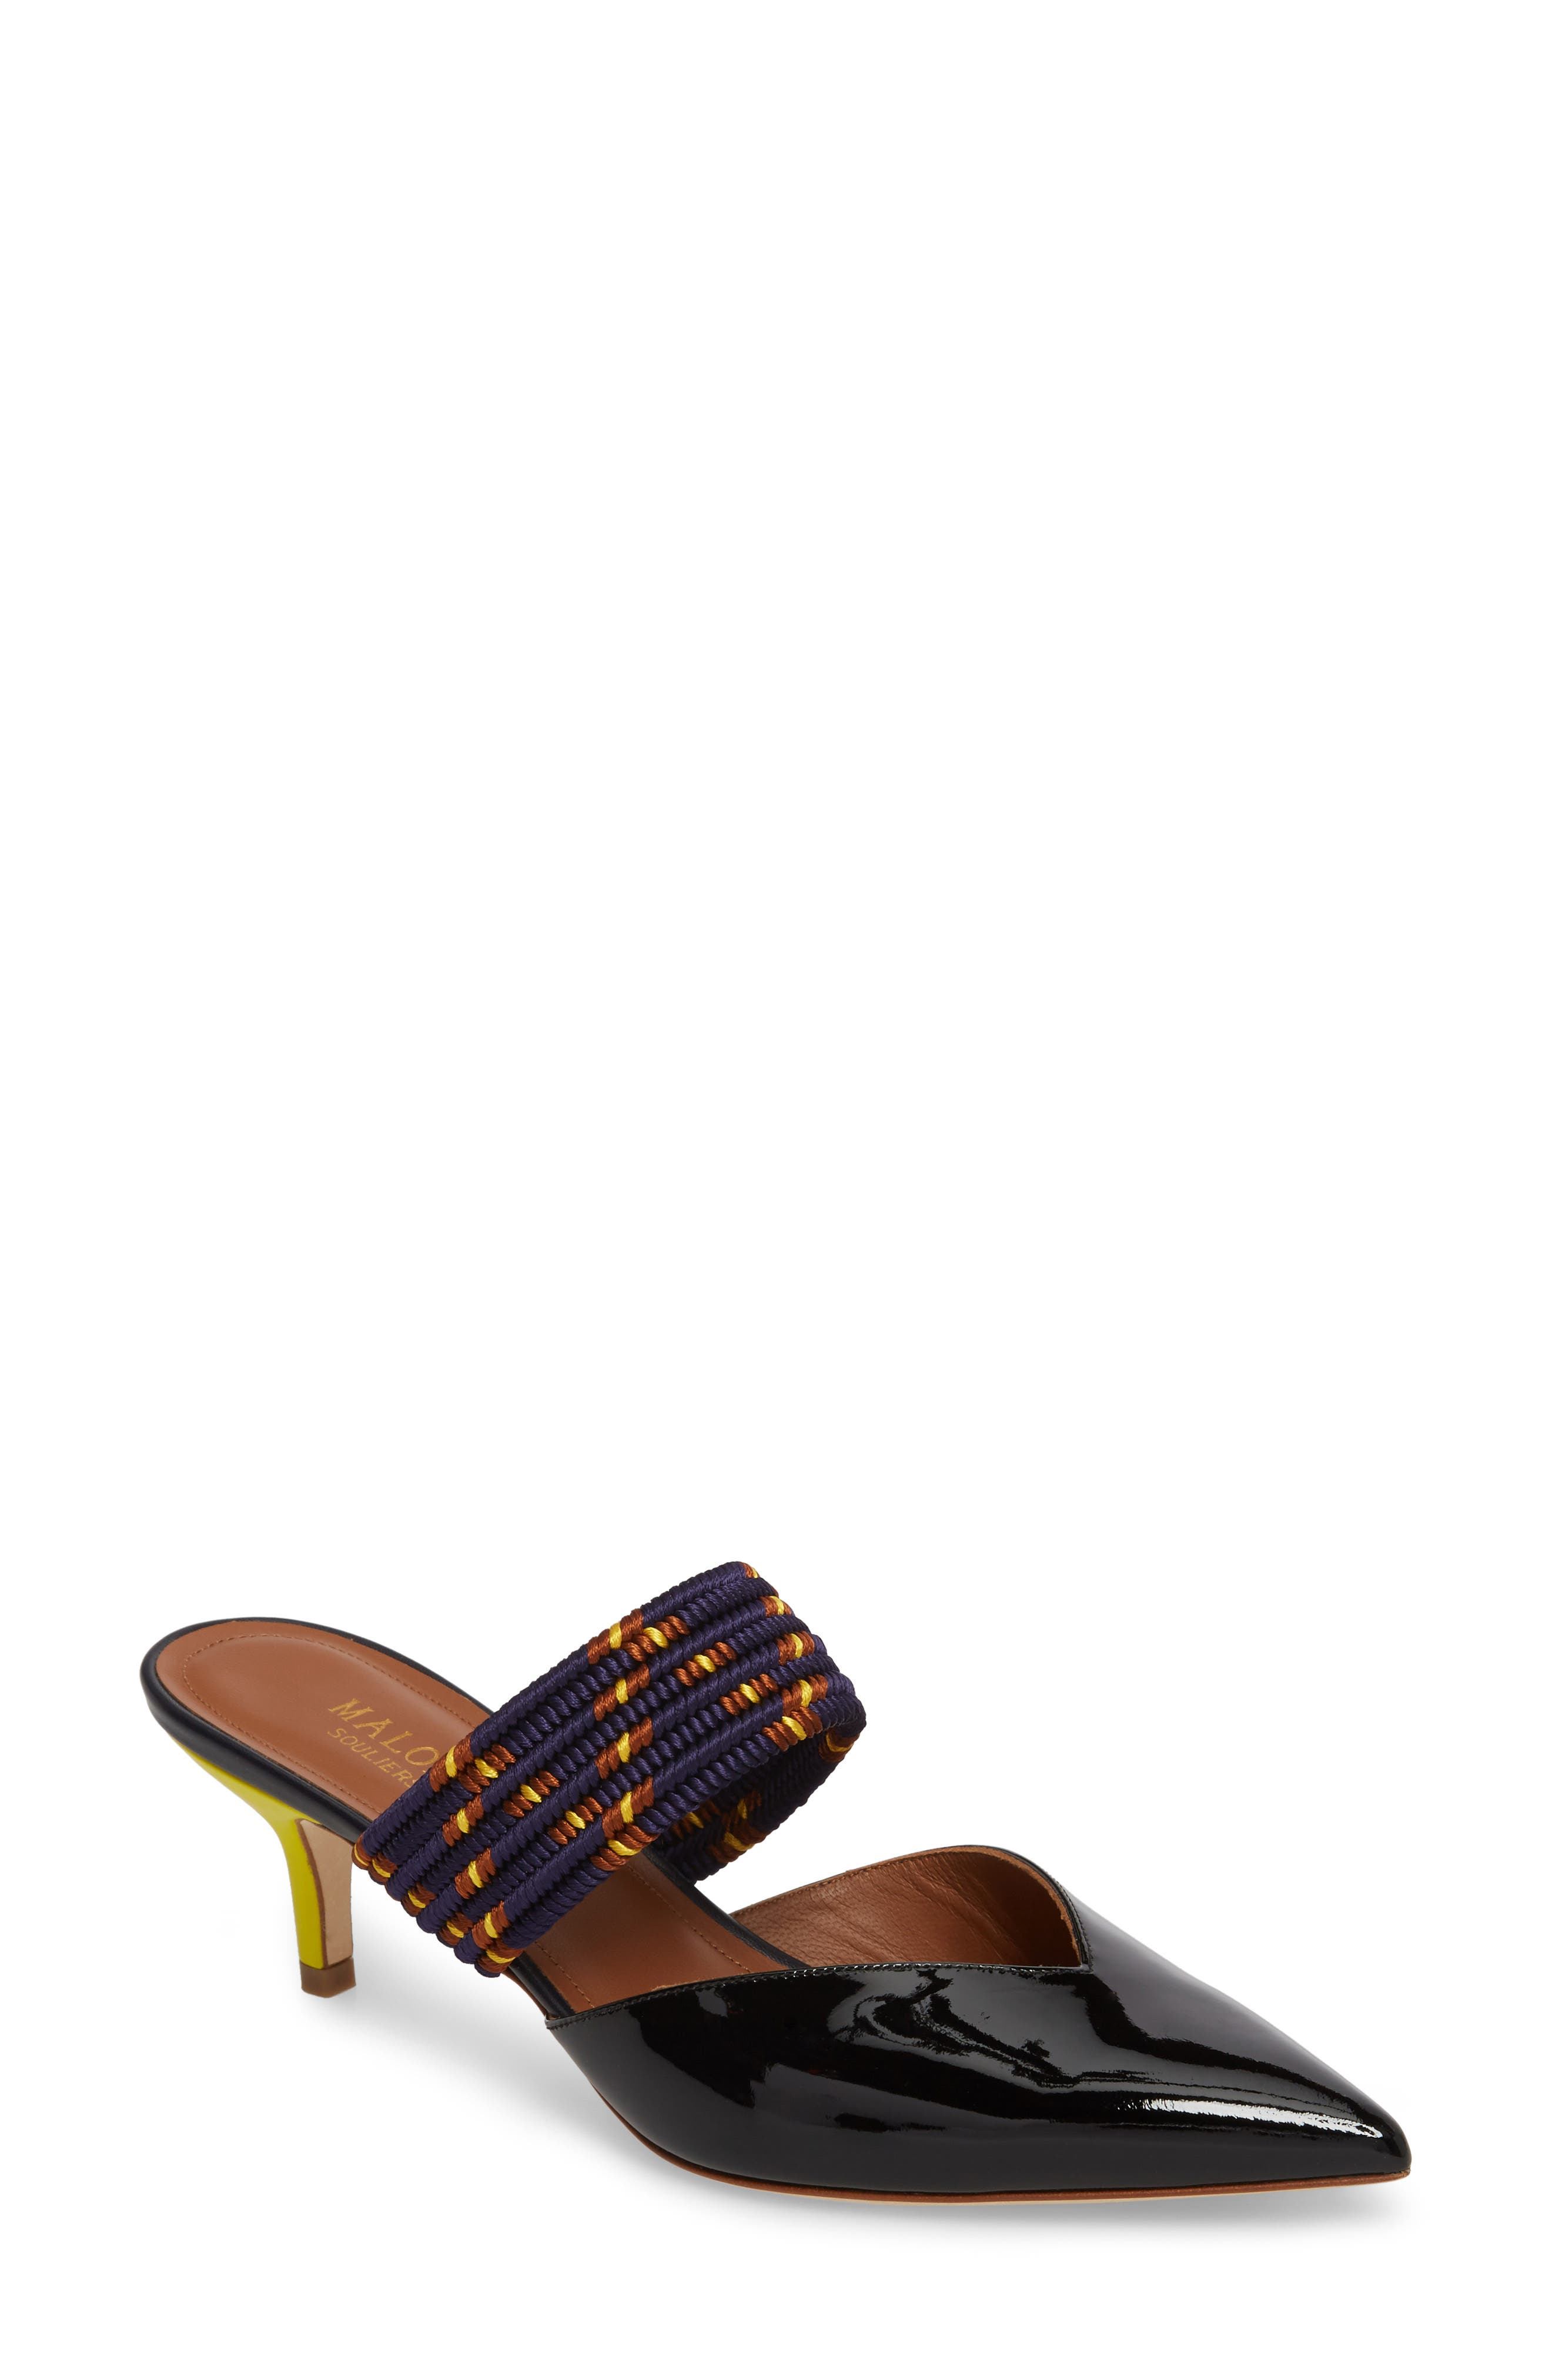 Maisie Banded Mule,                         Main,                         color, Black